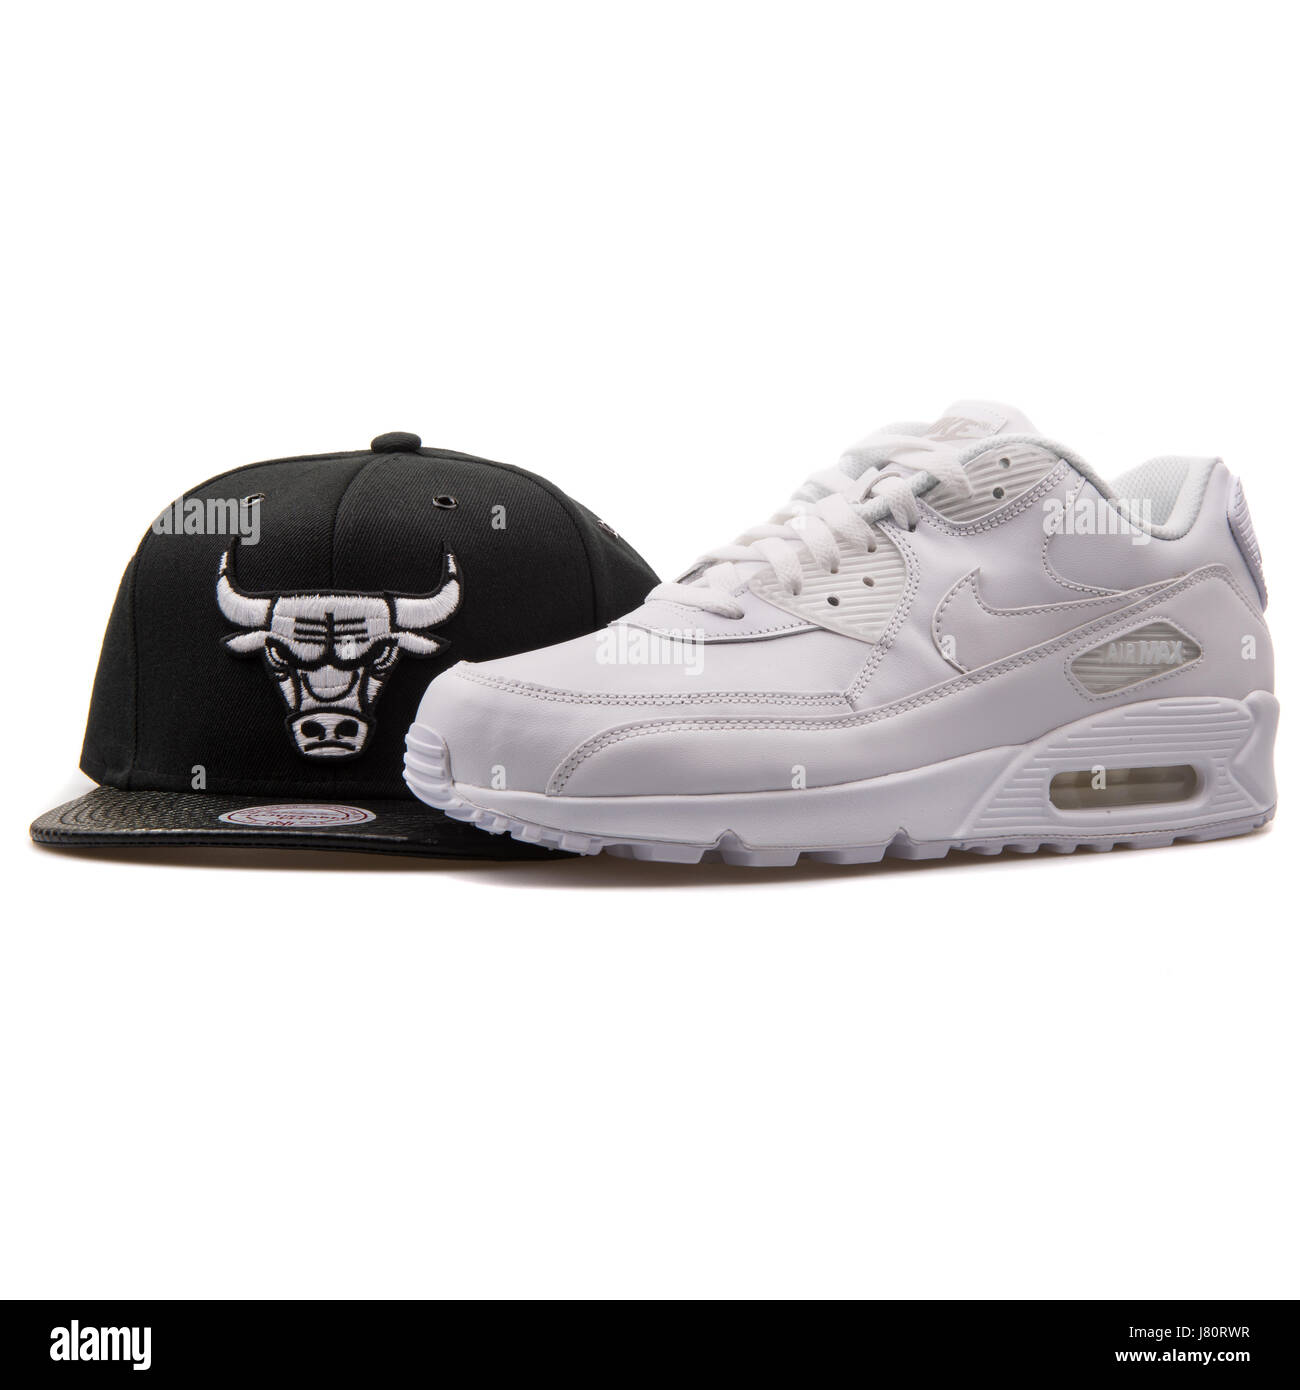 White Nike Air Max Sneaker and Black Mitchell & Ness Chicago Bulls Cap